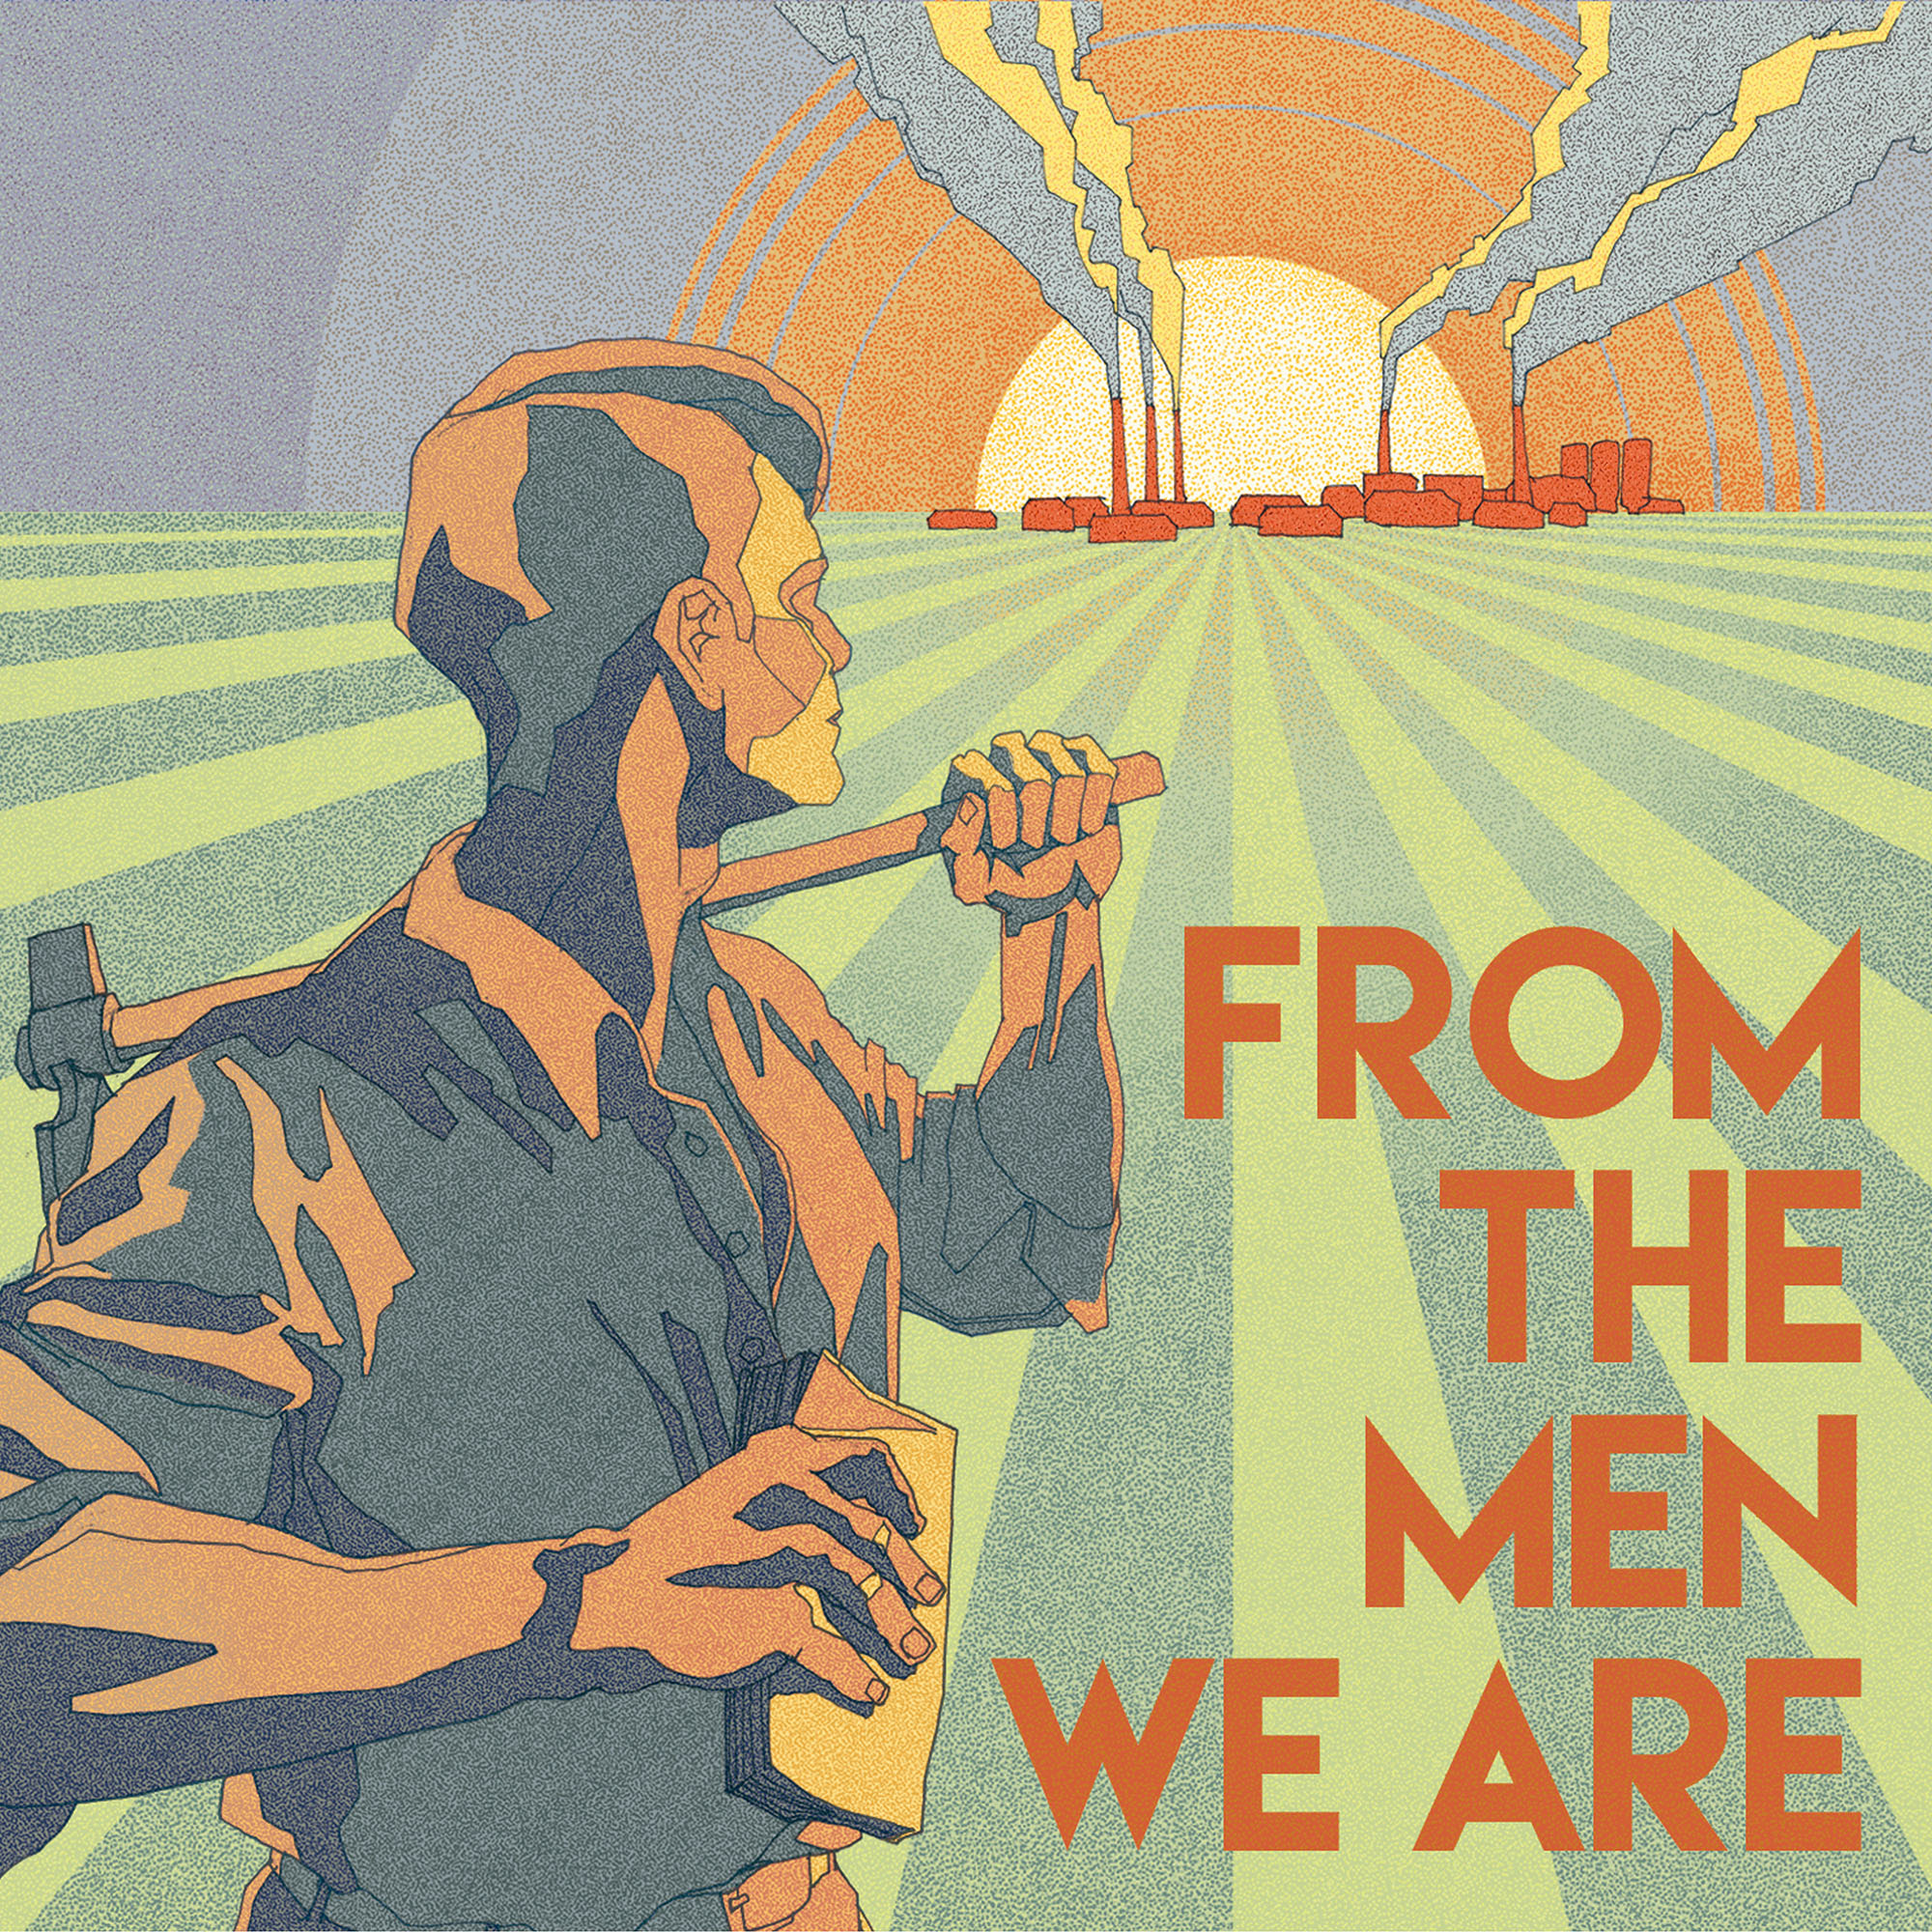 From the men we are